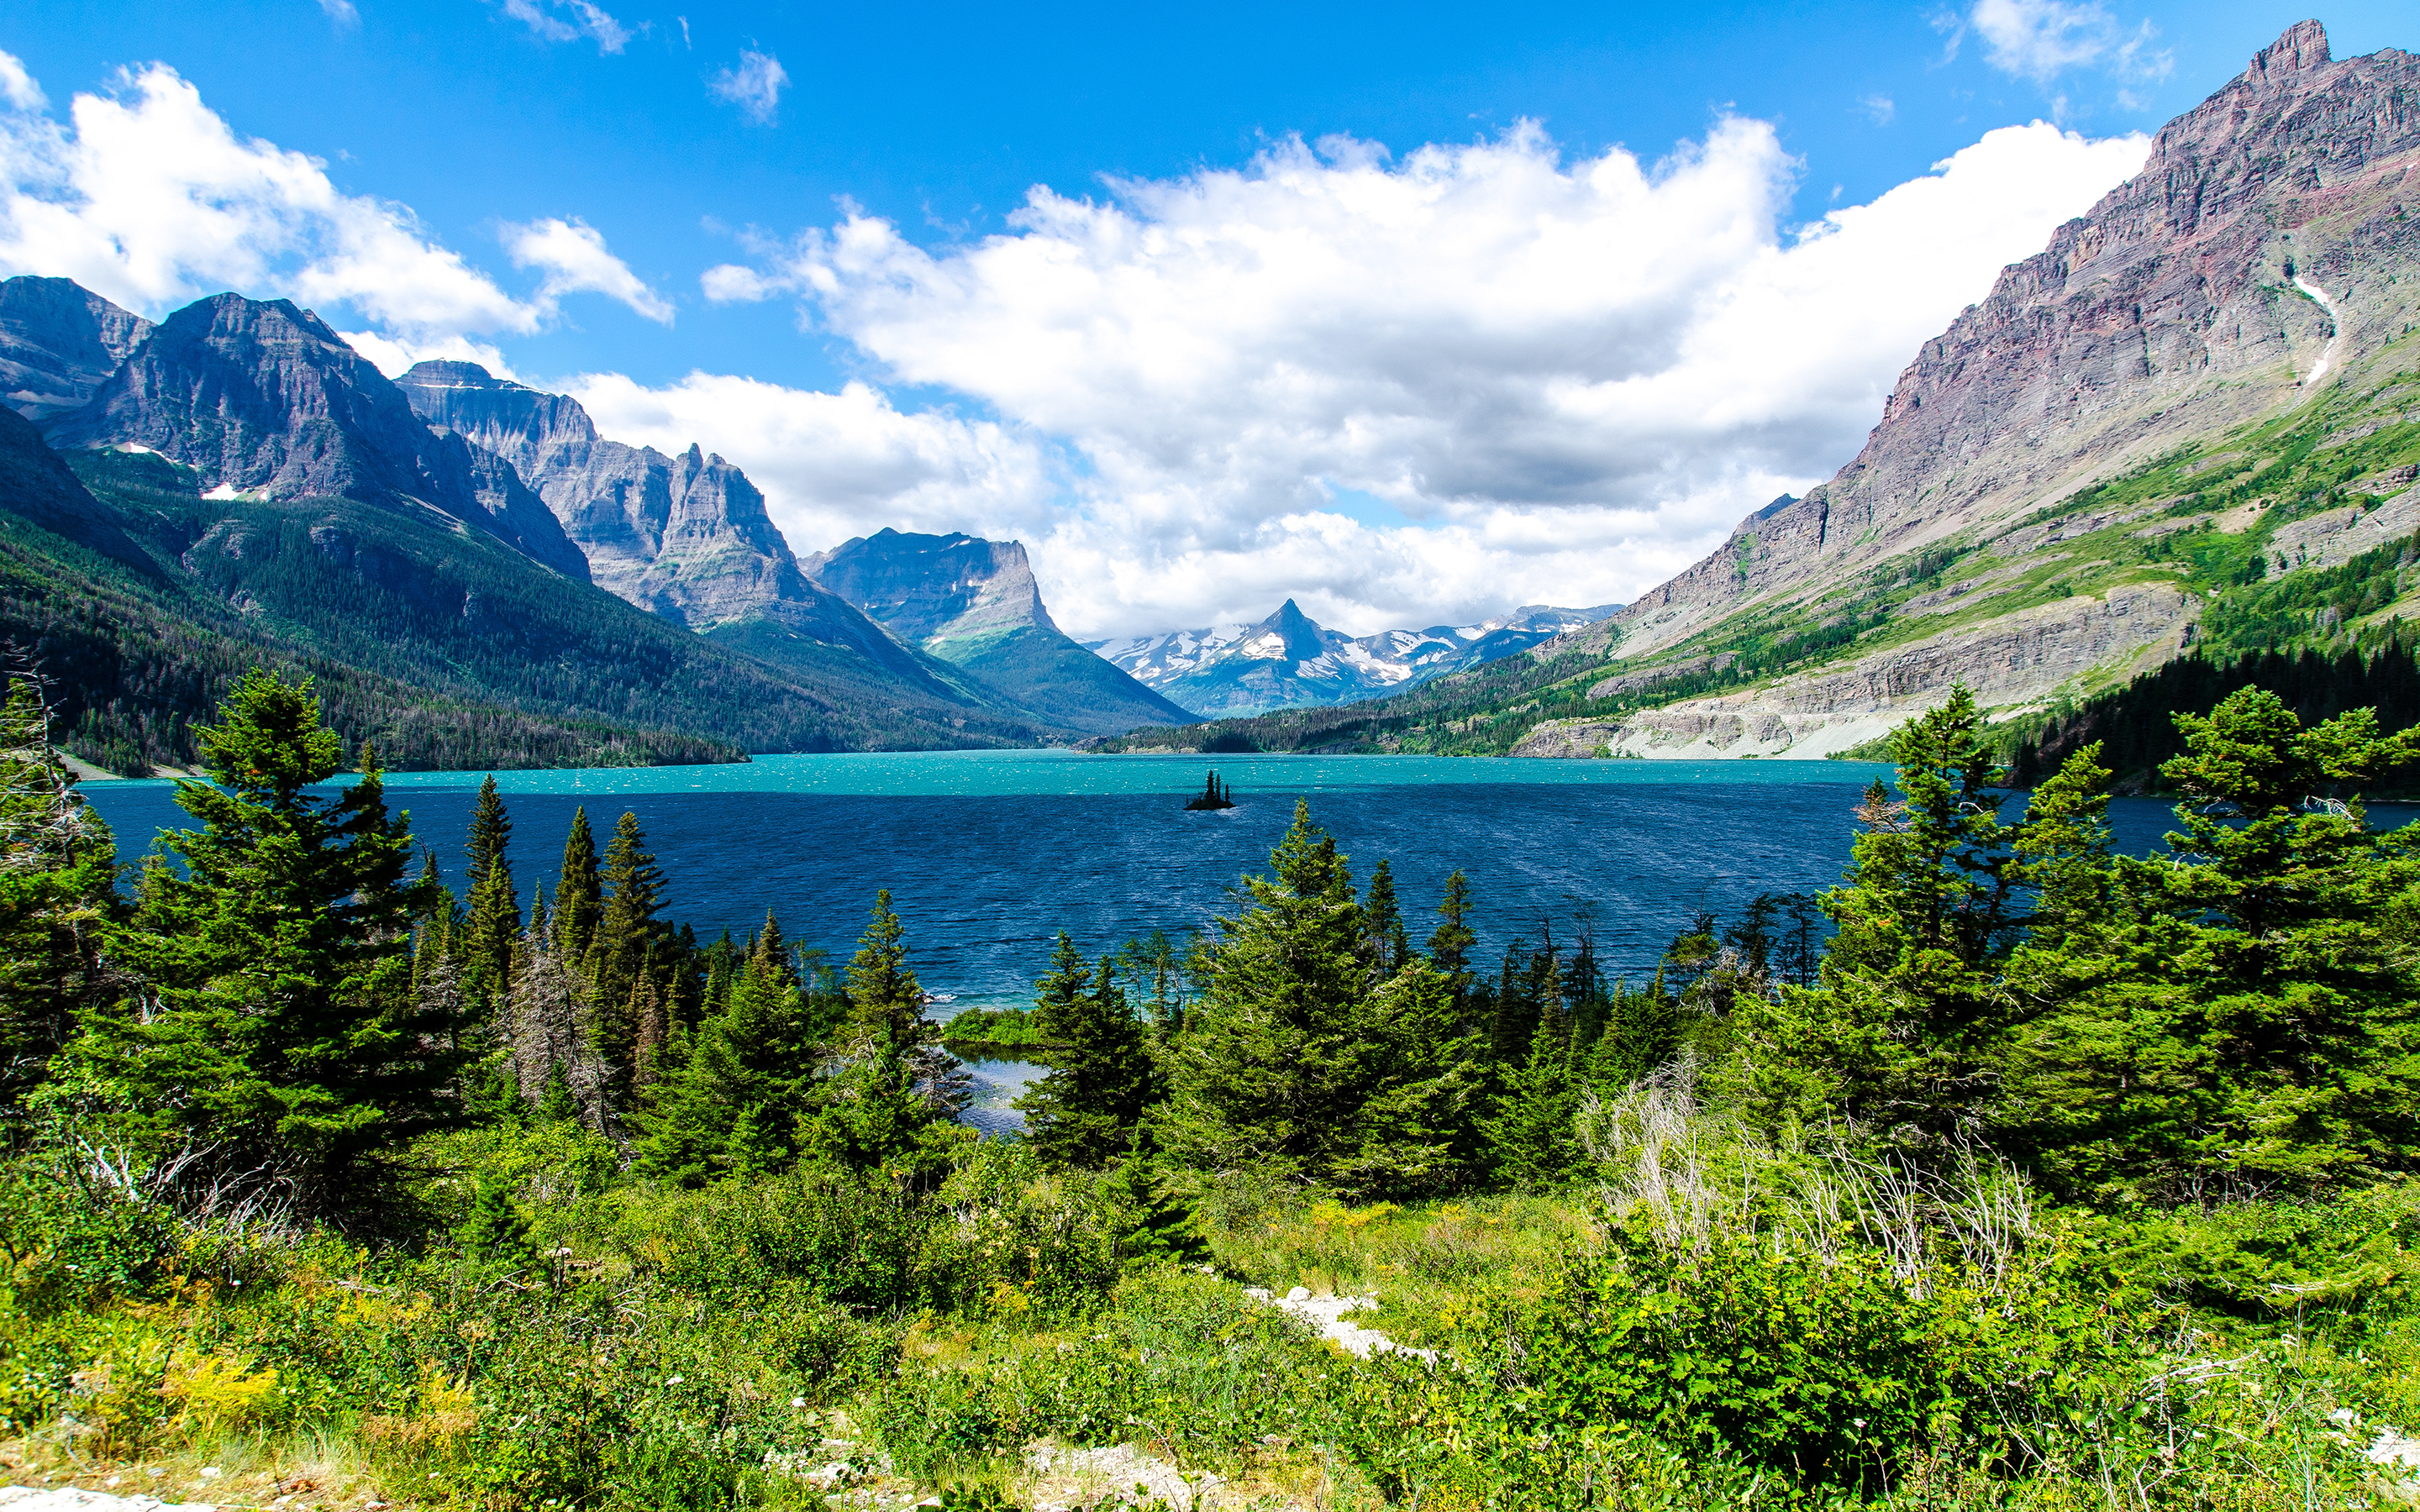 Saint Mary Lake Glacier National Park Wallpapers HD Wallpapers 2880x1800